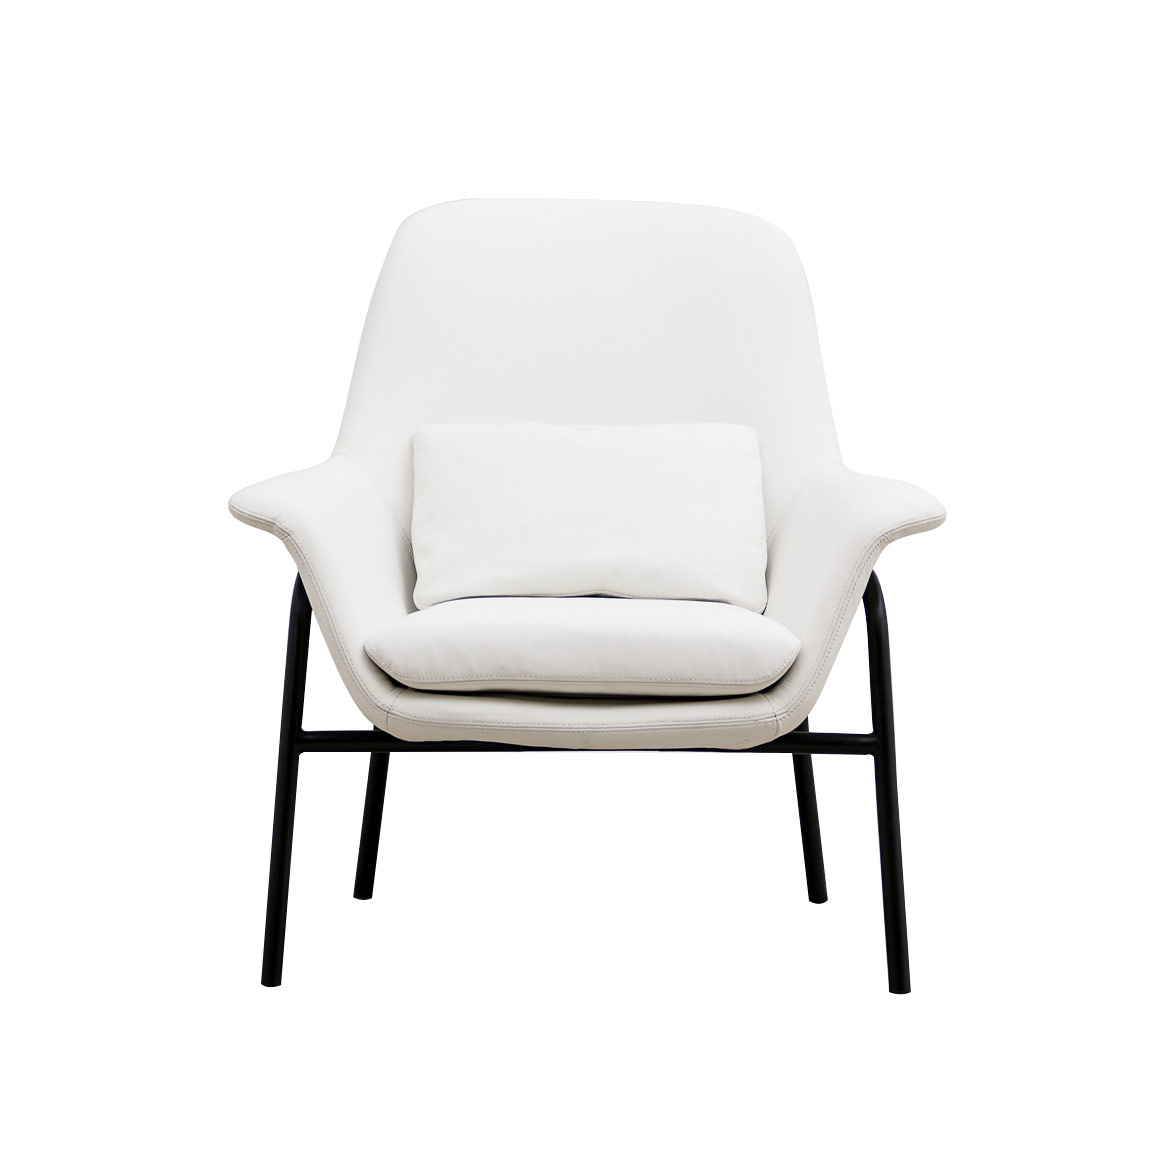 Noble chair hip furniture for Hip furniture